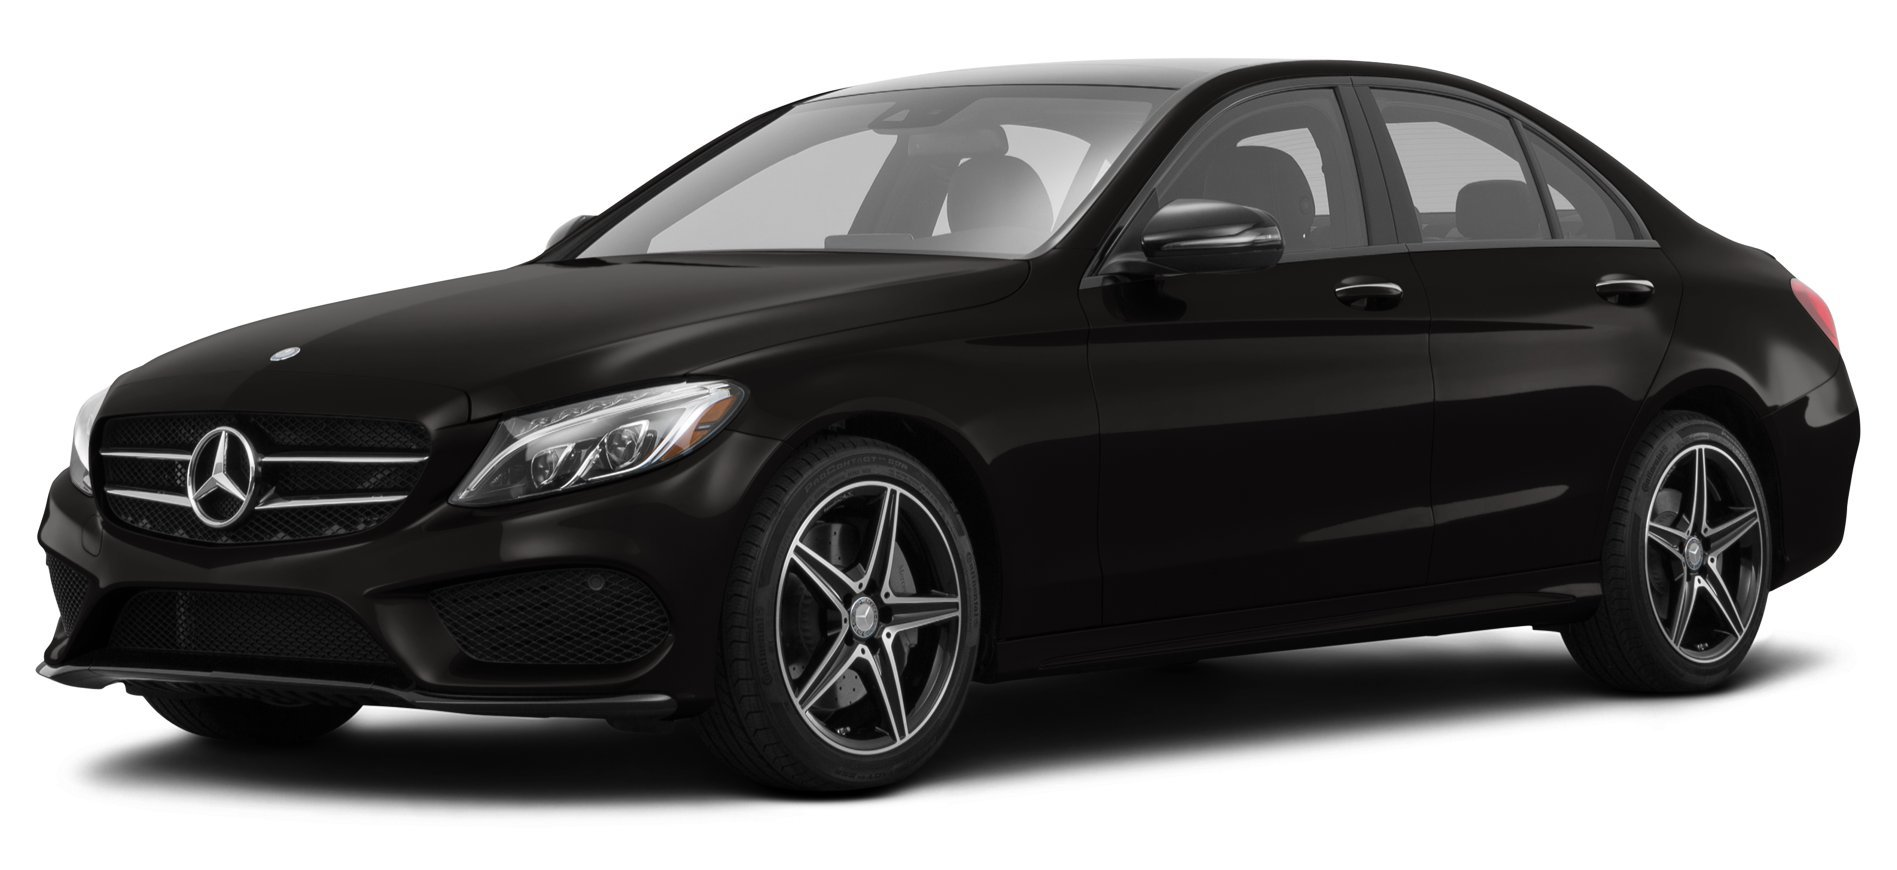 2016 mercedes benz c300 reviews images and for Mercedes benz c300 horsepower